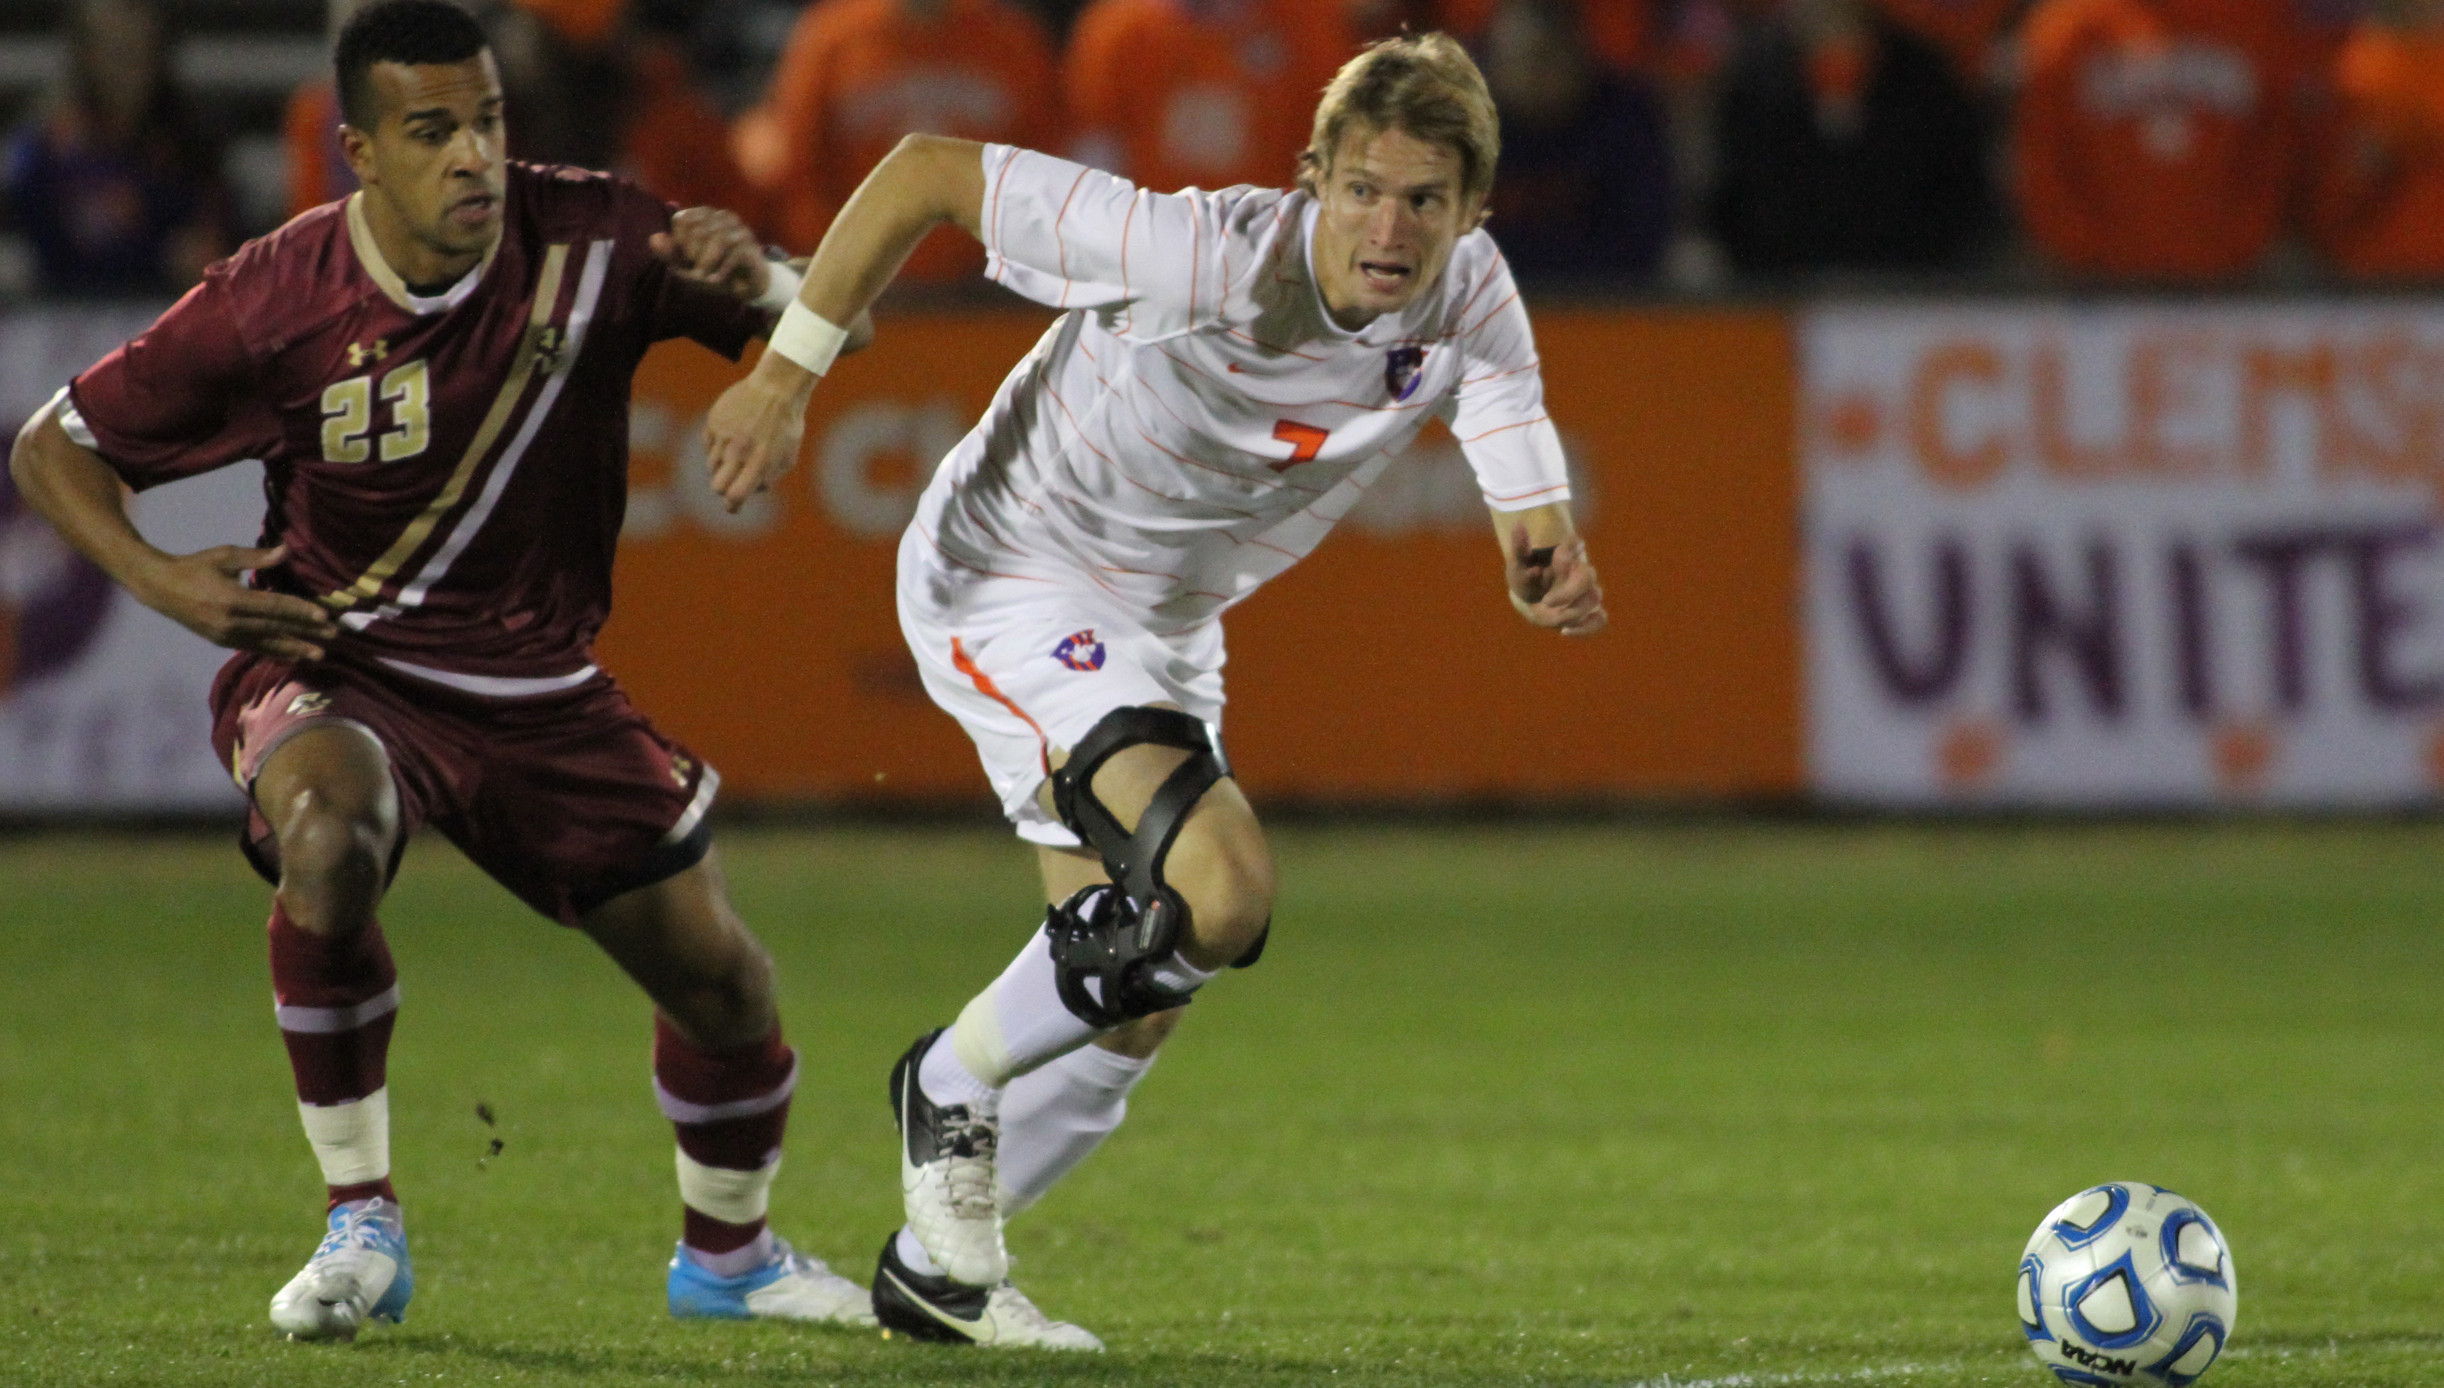 Clemson Defeats Wofford in Men?s Soccer Exhibition Action